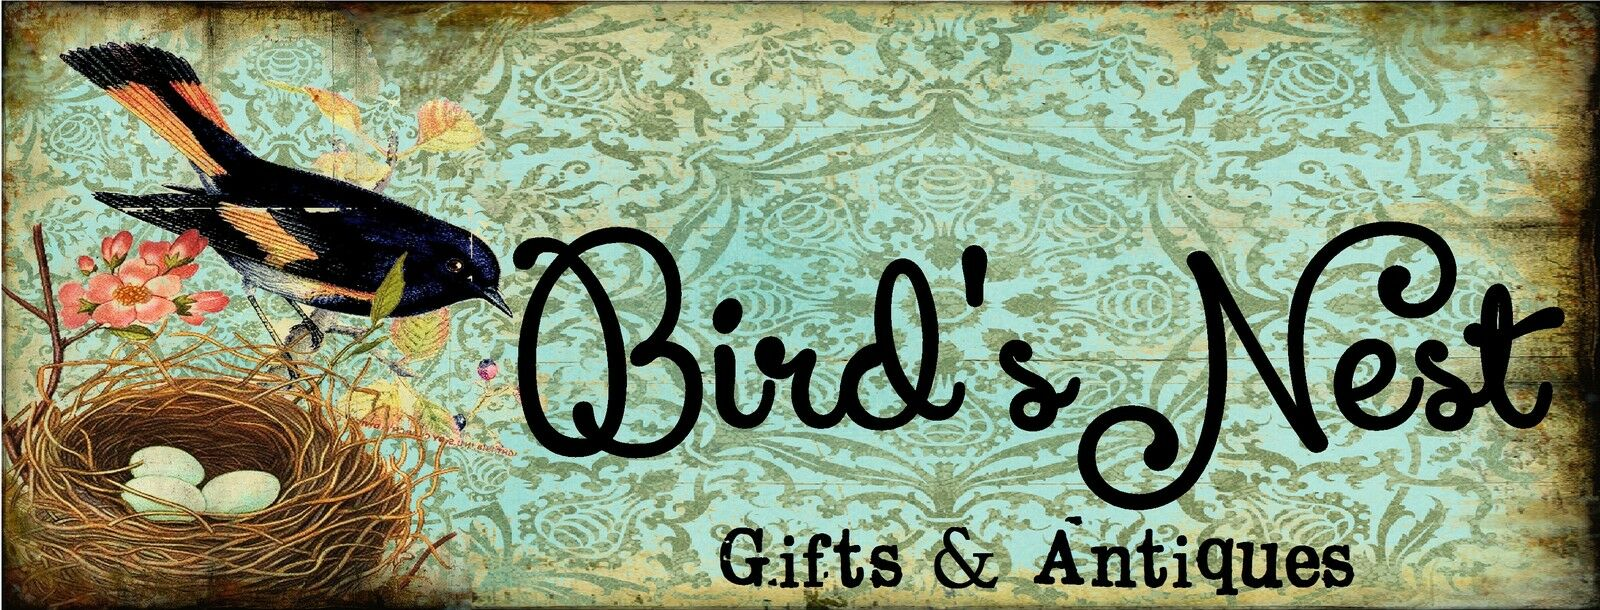 Bird's Nest Gifts and Antiques